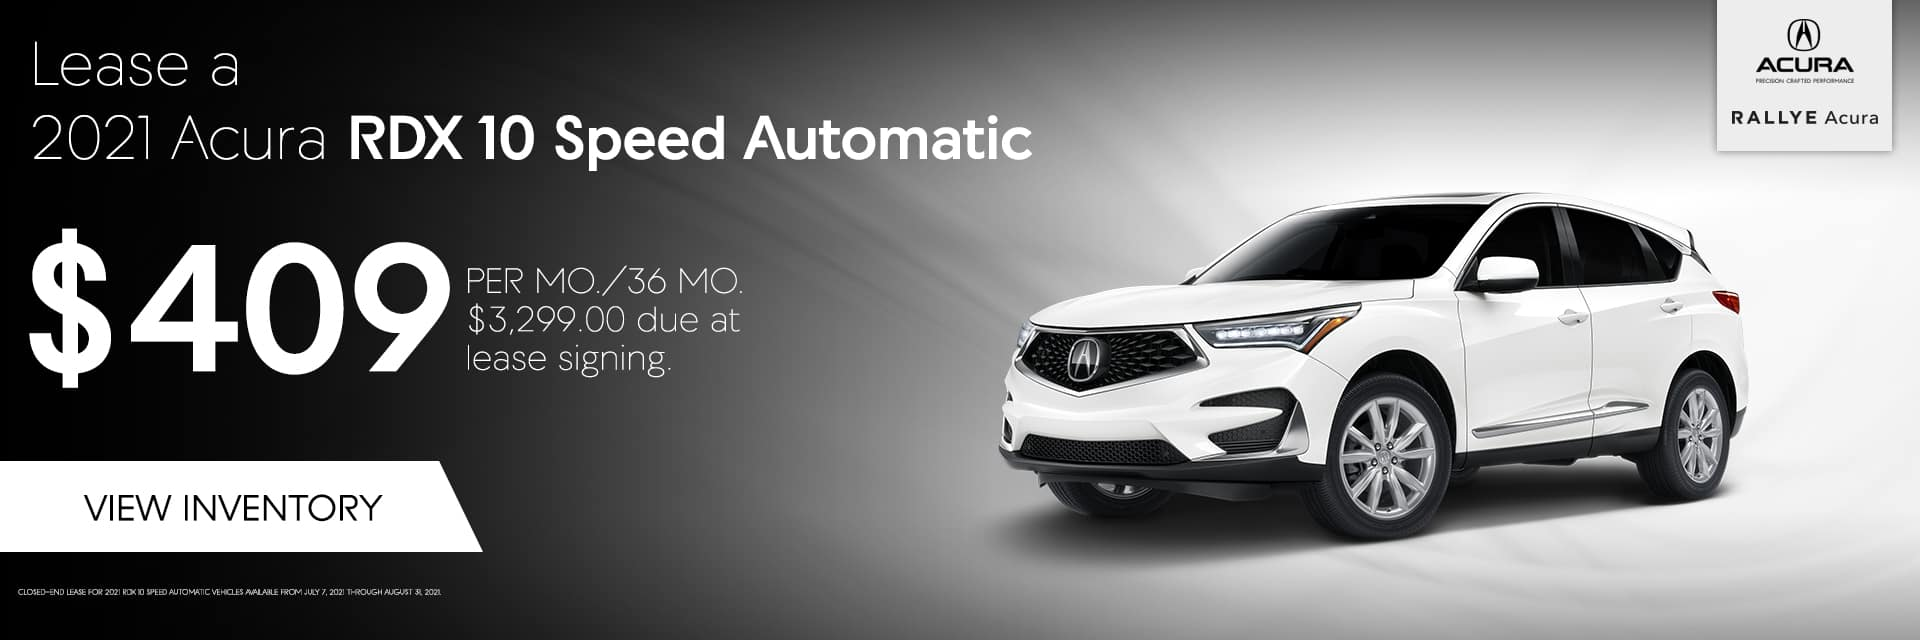 Lease a 2021 RDX 10 Speed Automatic